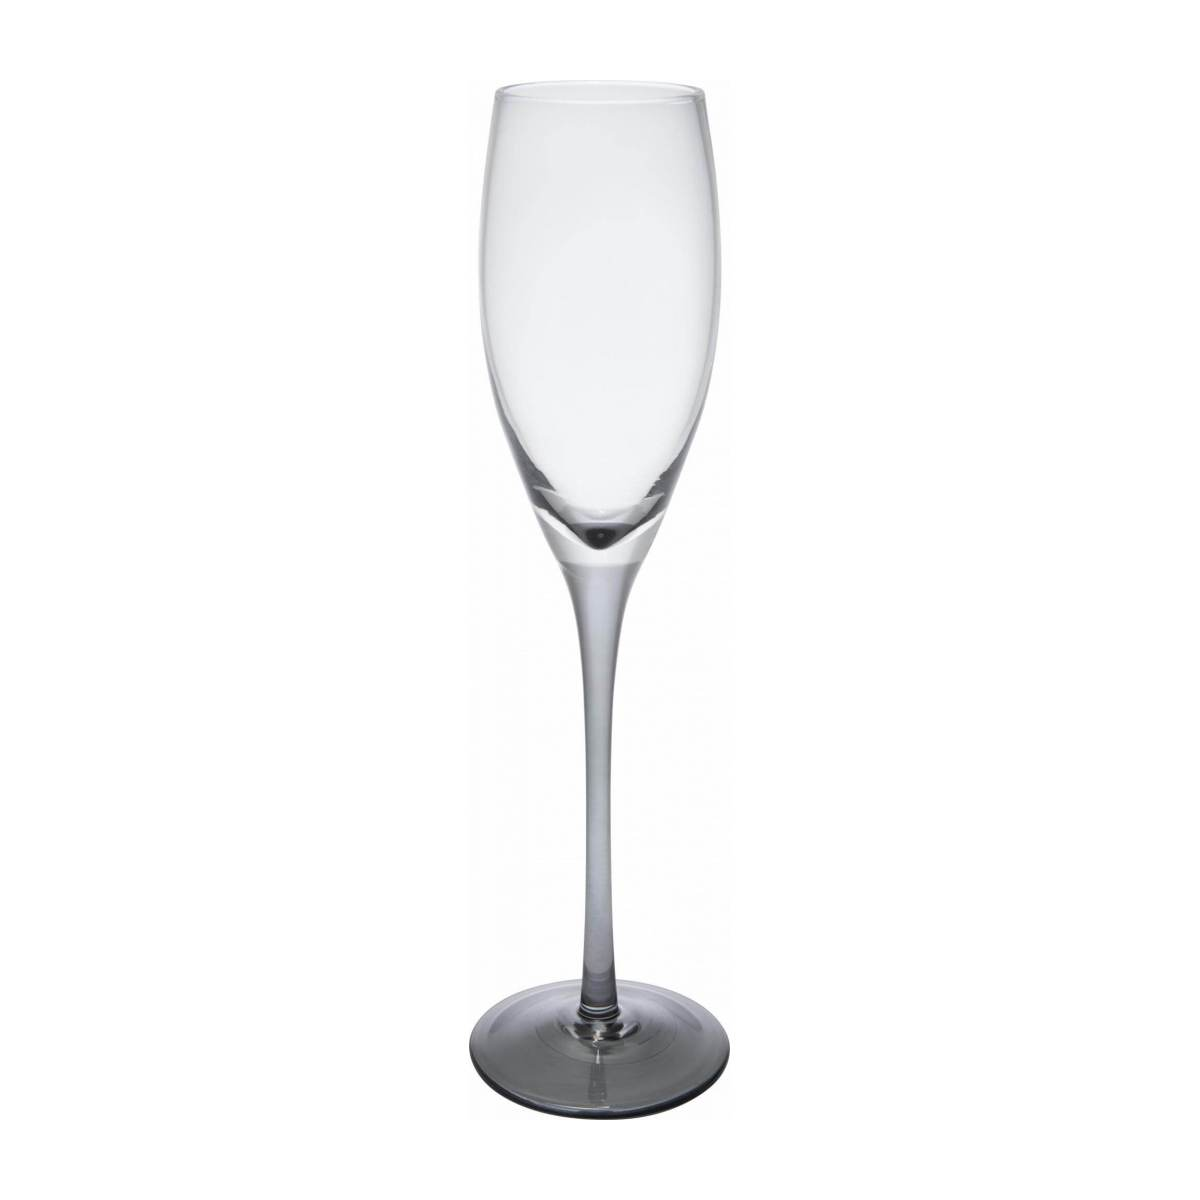 Champagne glass made of smoked glass n°1